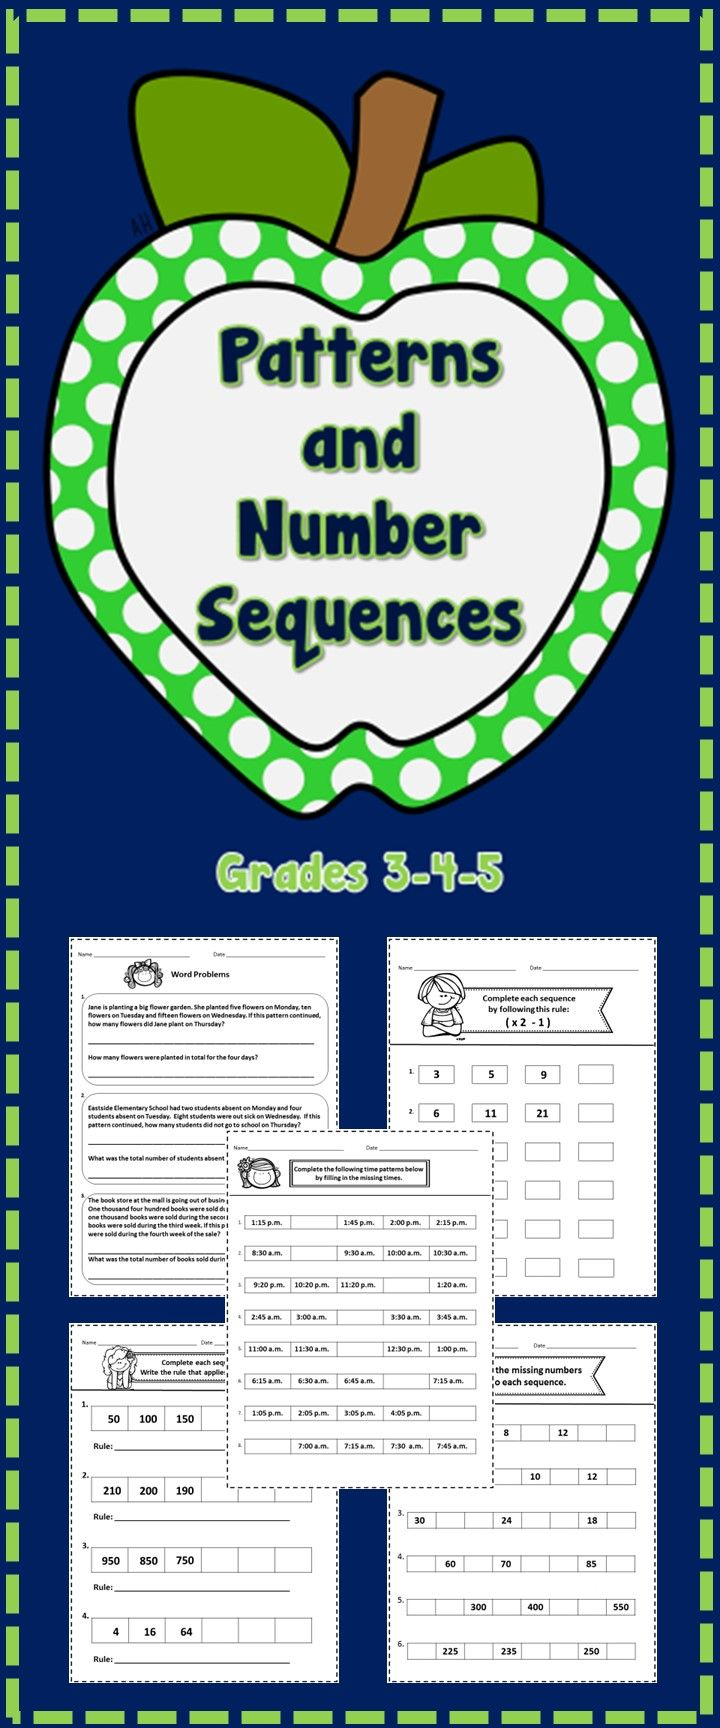 Patterns and Number Sequences - grades 3-4-5 (36 no prep printables)